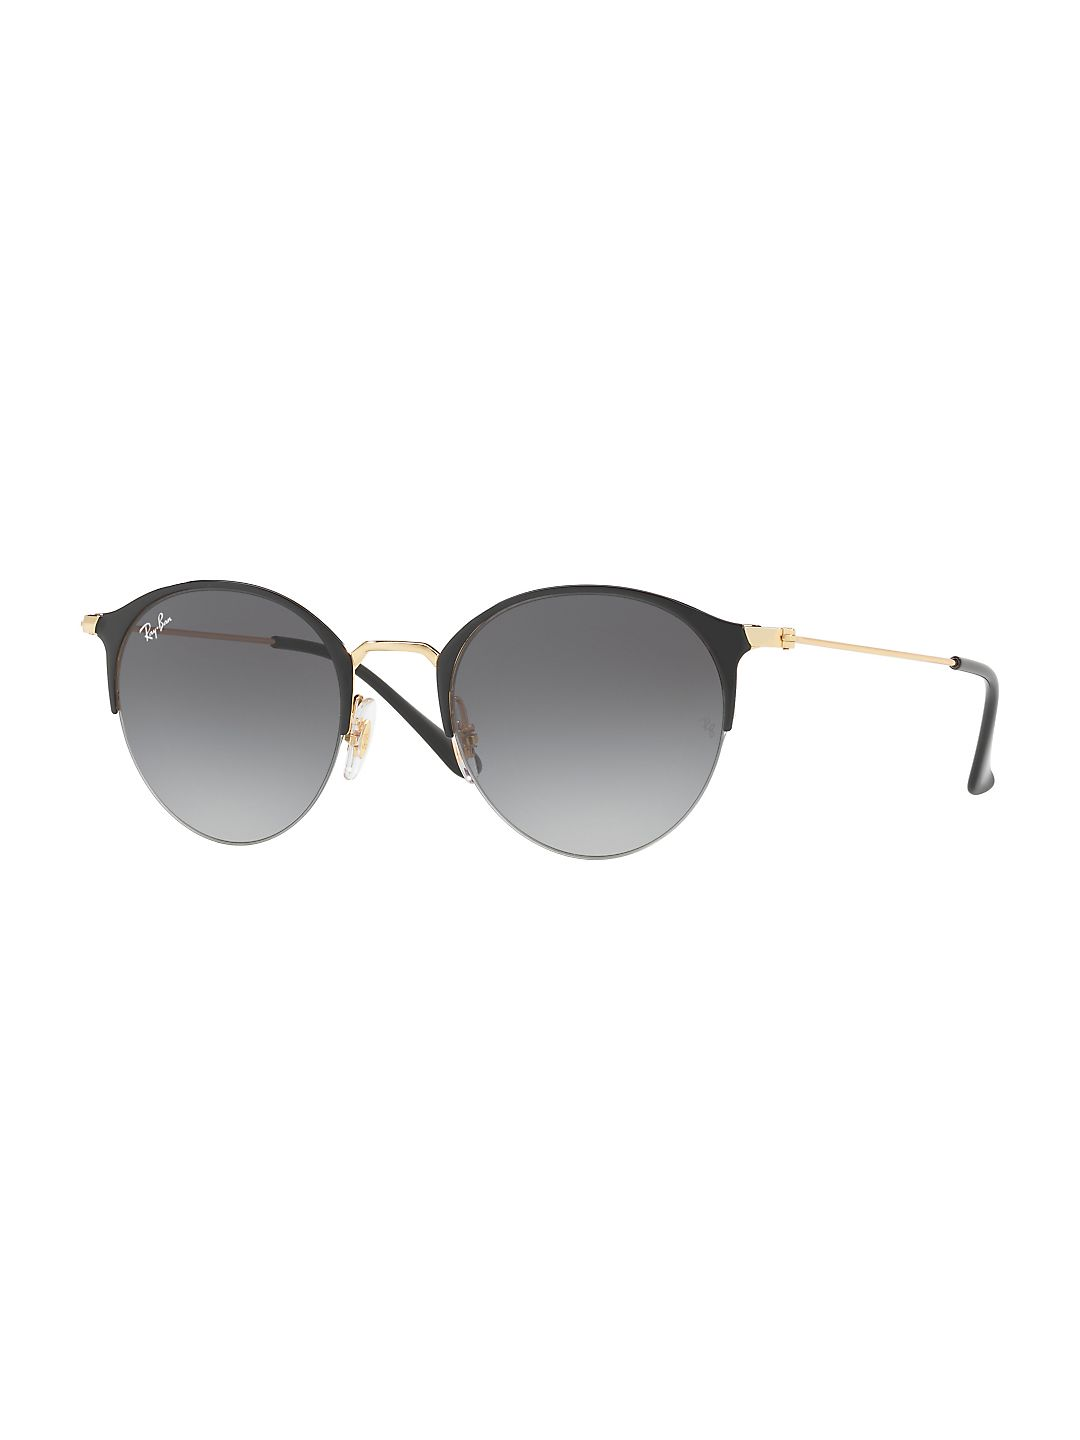 Ray-Ban Unisex RB3578 Round Metal Sunglasses, 50mm